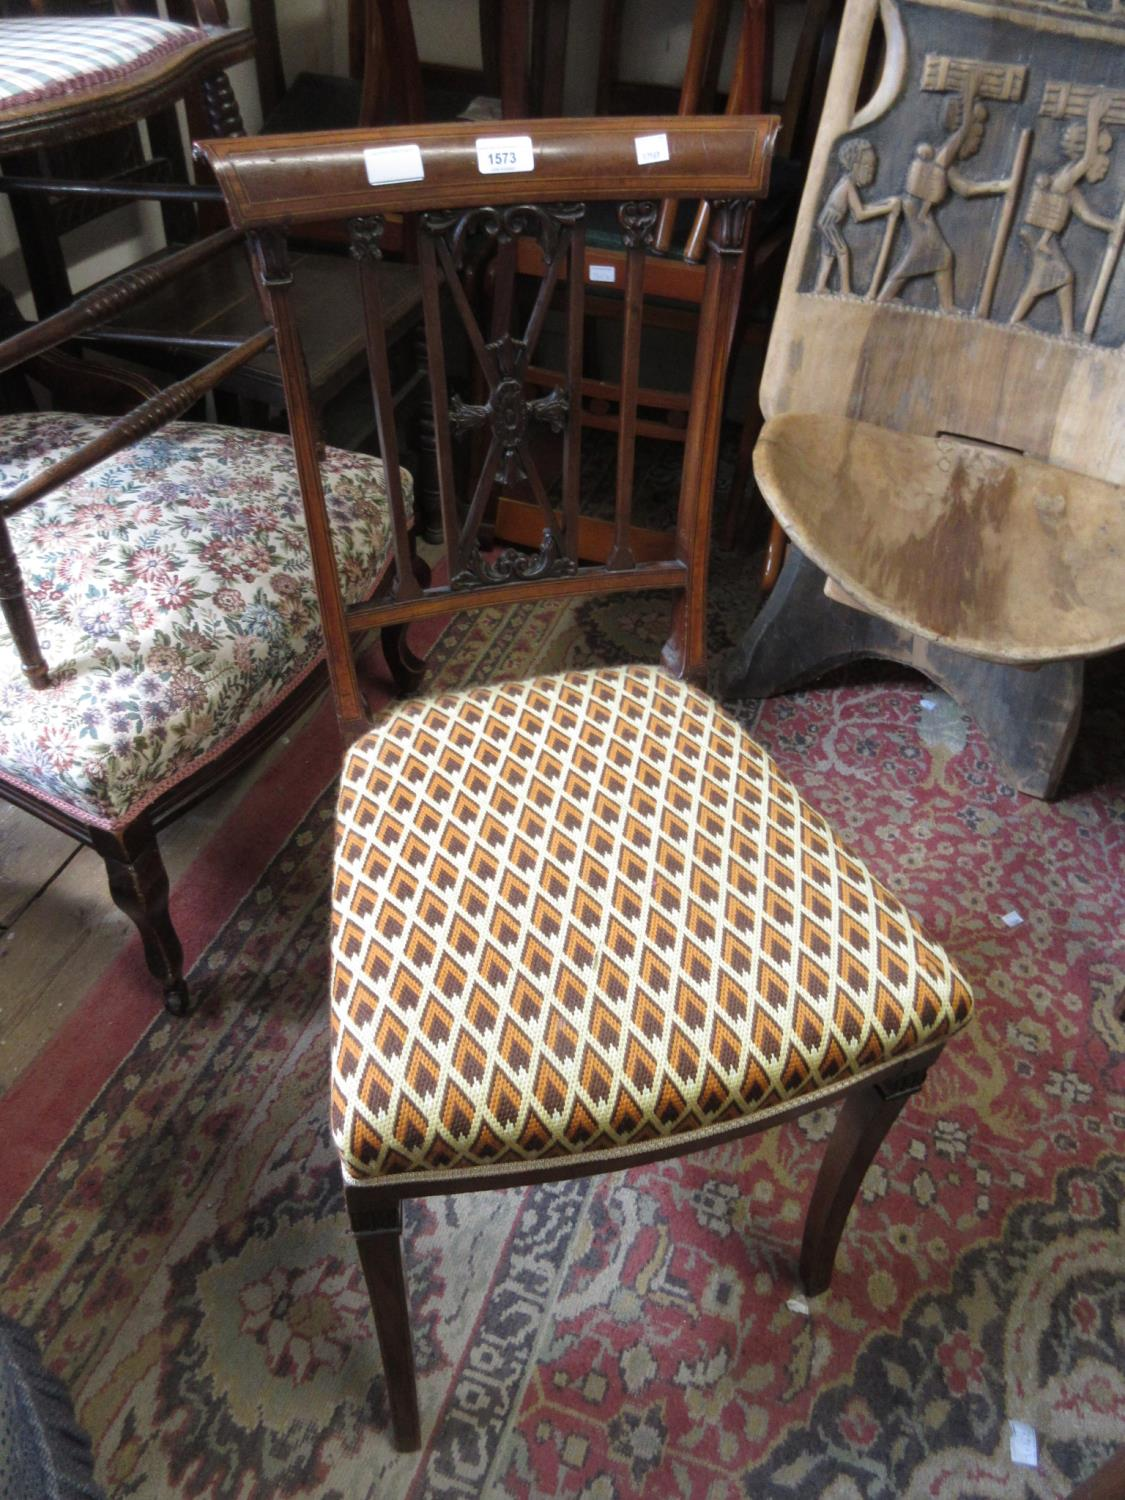 Edwardian mahogany and inlaid side chair with carved splat back together with an oak smoker's bow